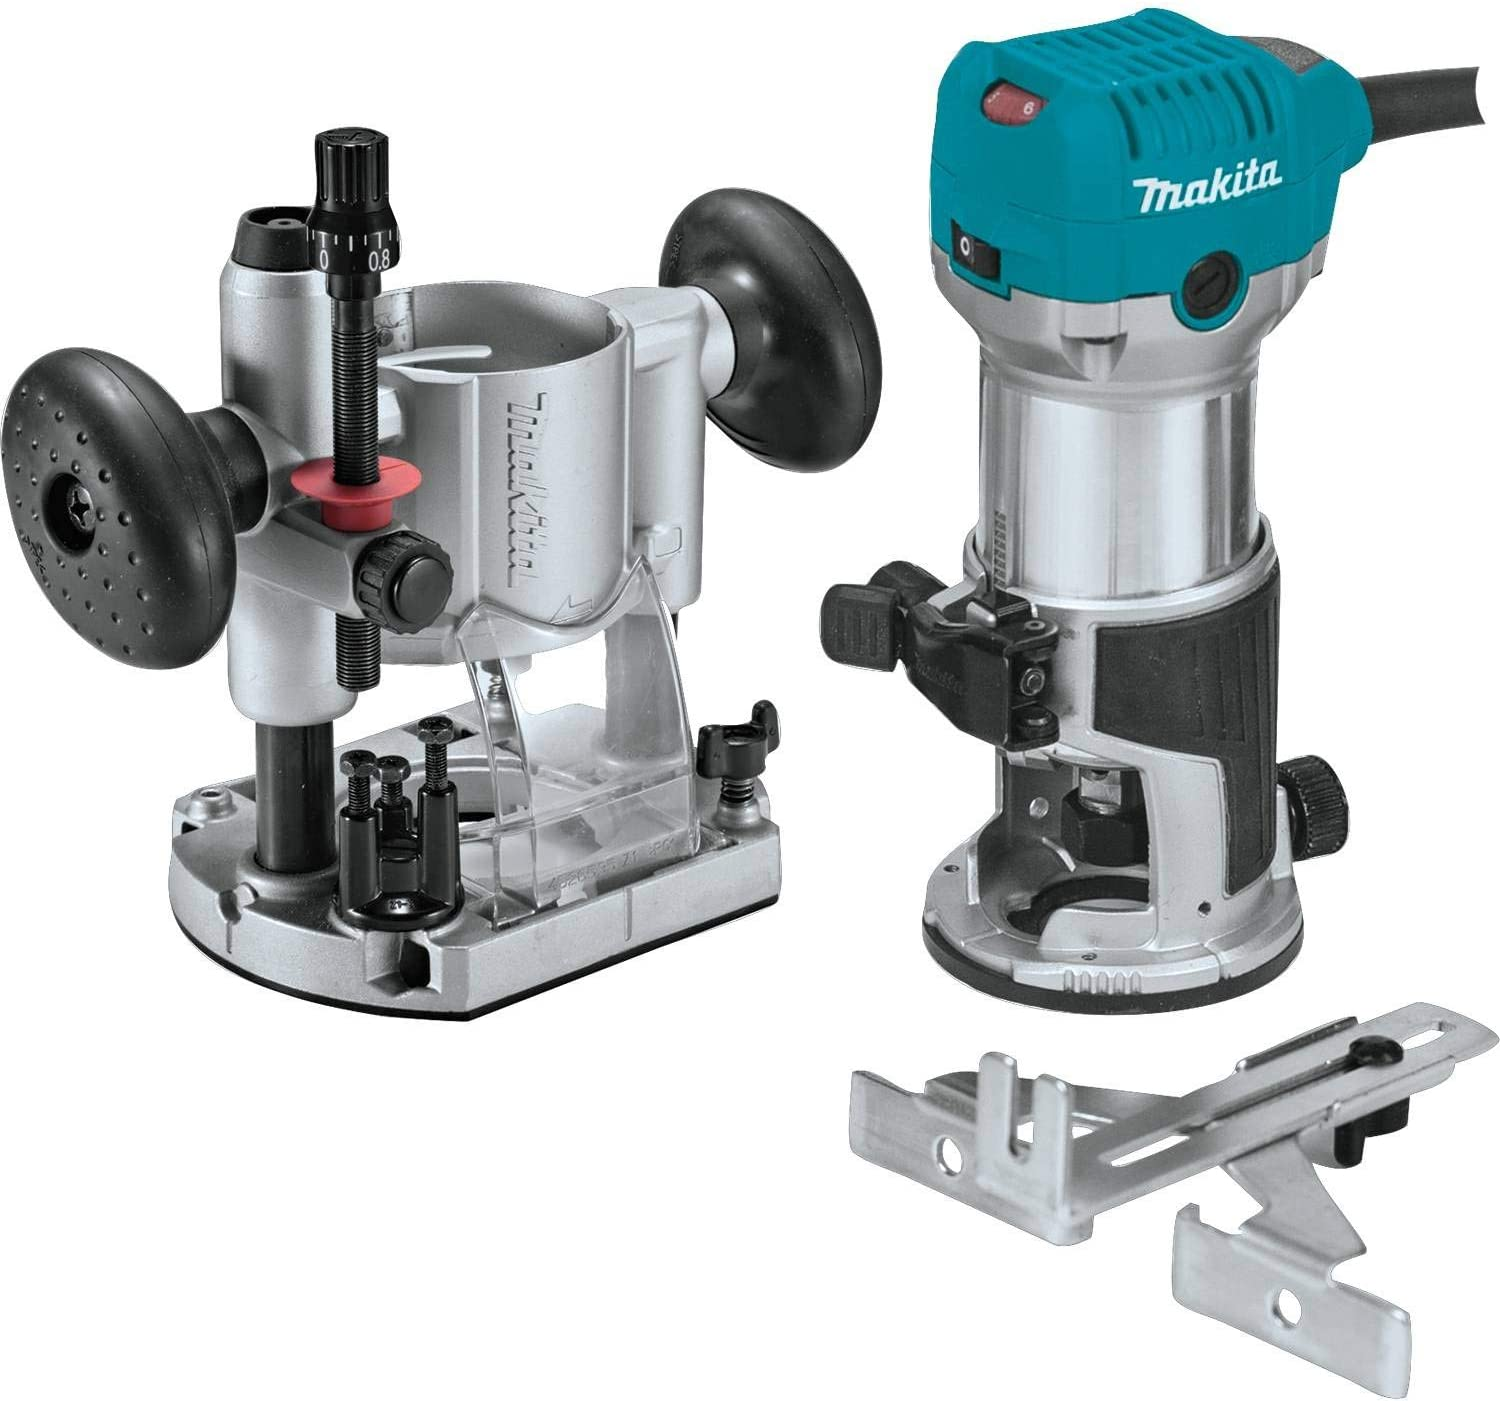 Best Wood Routers: Makita RT0701CX7 1-1/4 HP Compact Router Kit